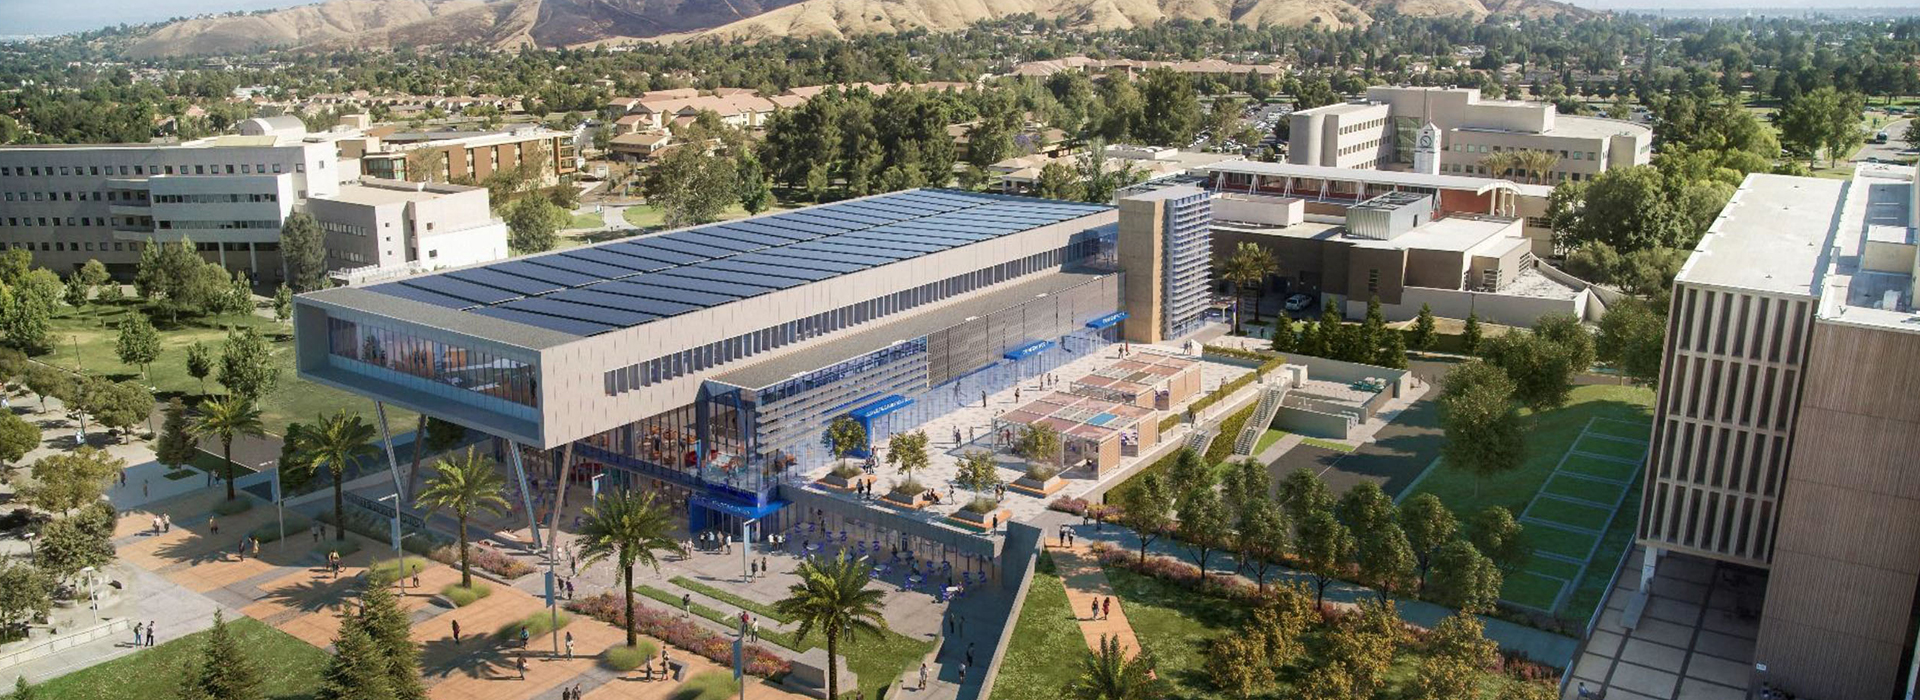 Groundbreaking ceremony for CSUSB's Santos Manuel Student Union expansion set for June 4